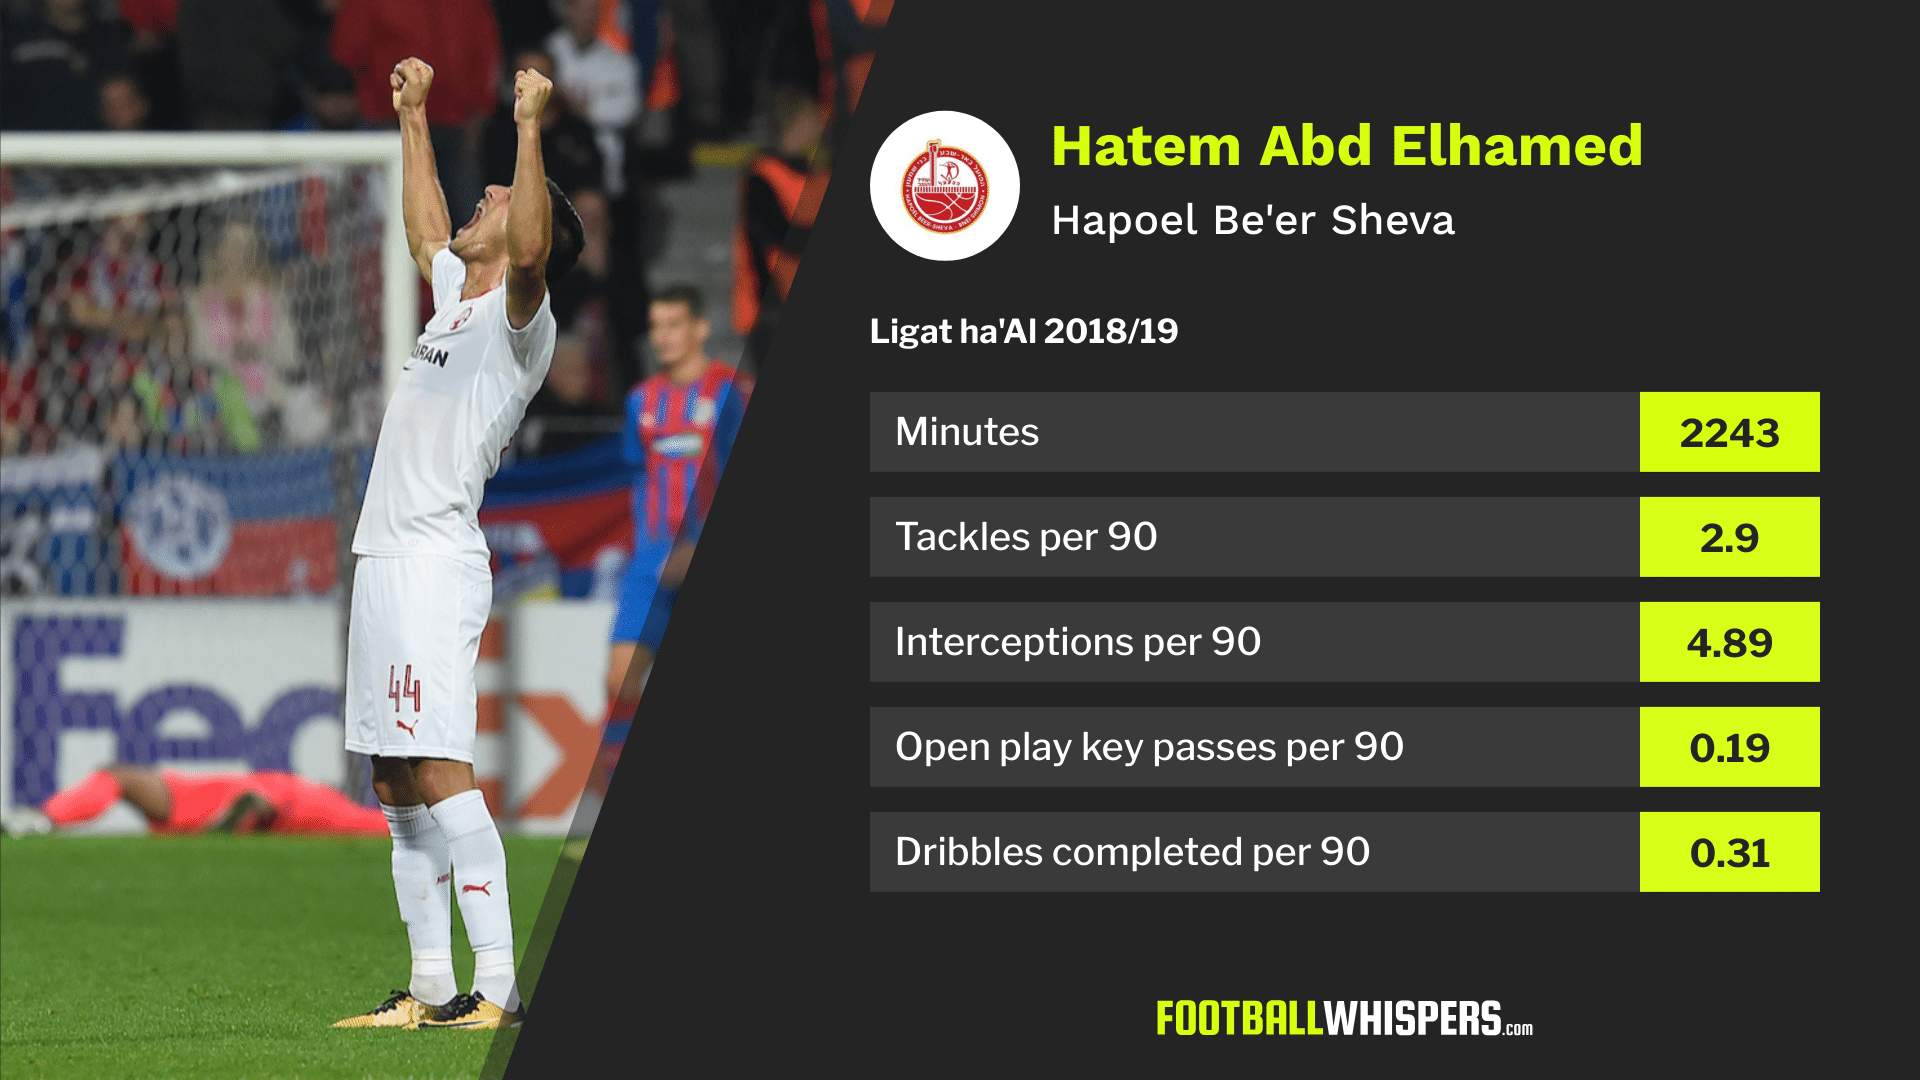 Hatem Abd Elhamed's 2018/19 stats for Hapoel Be'Er Sheva